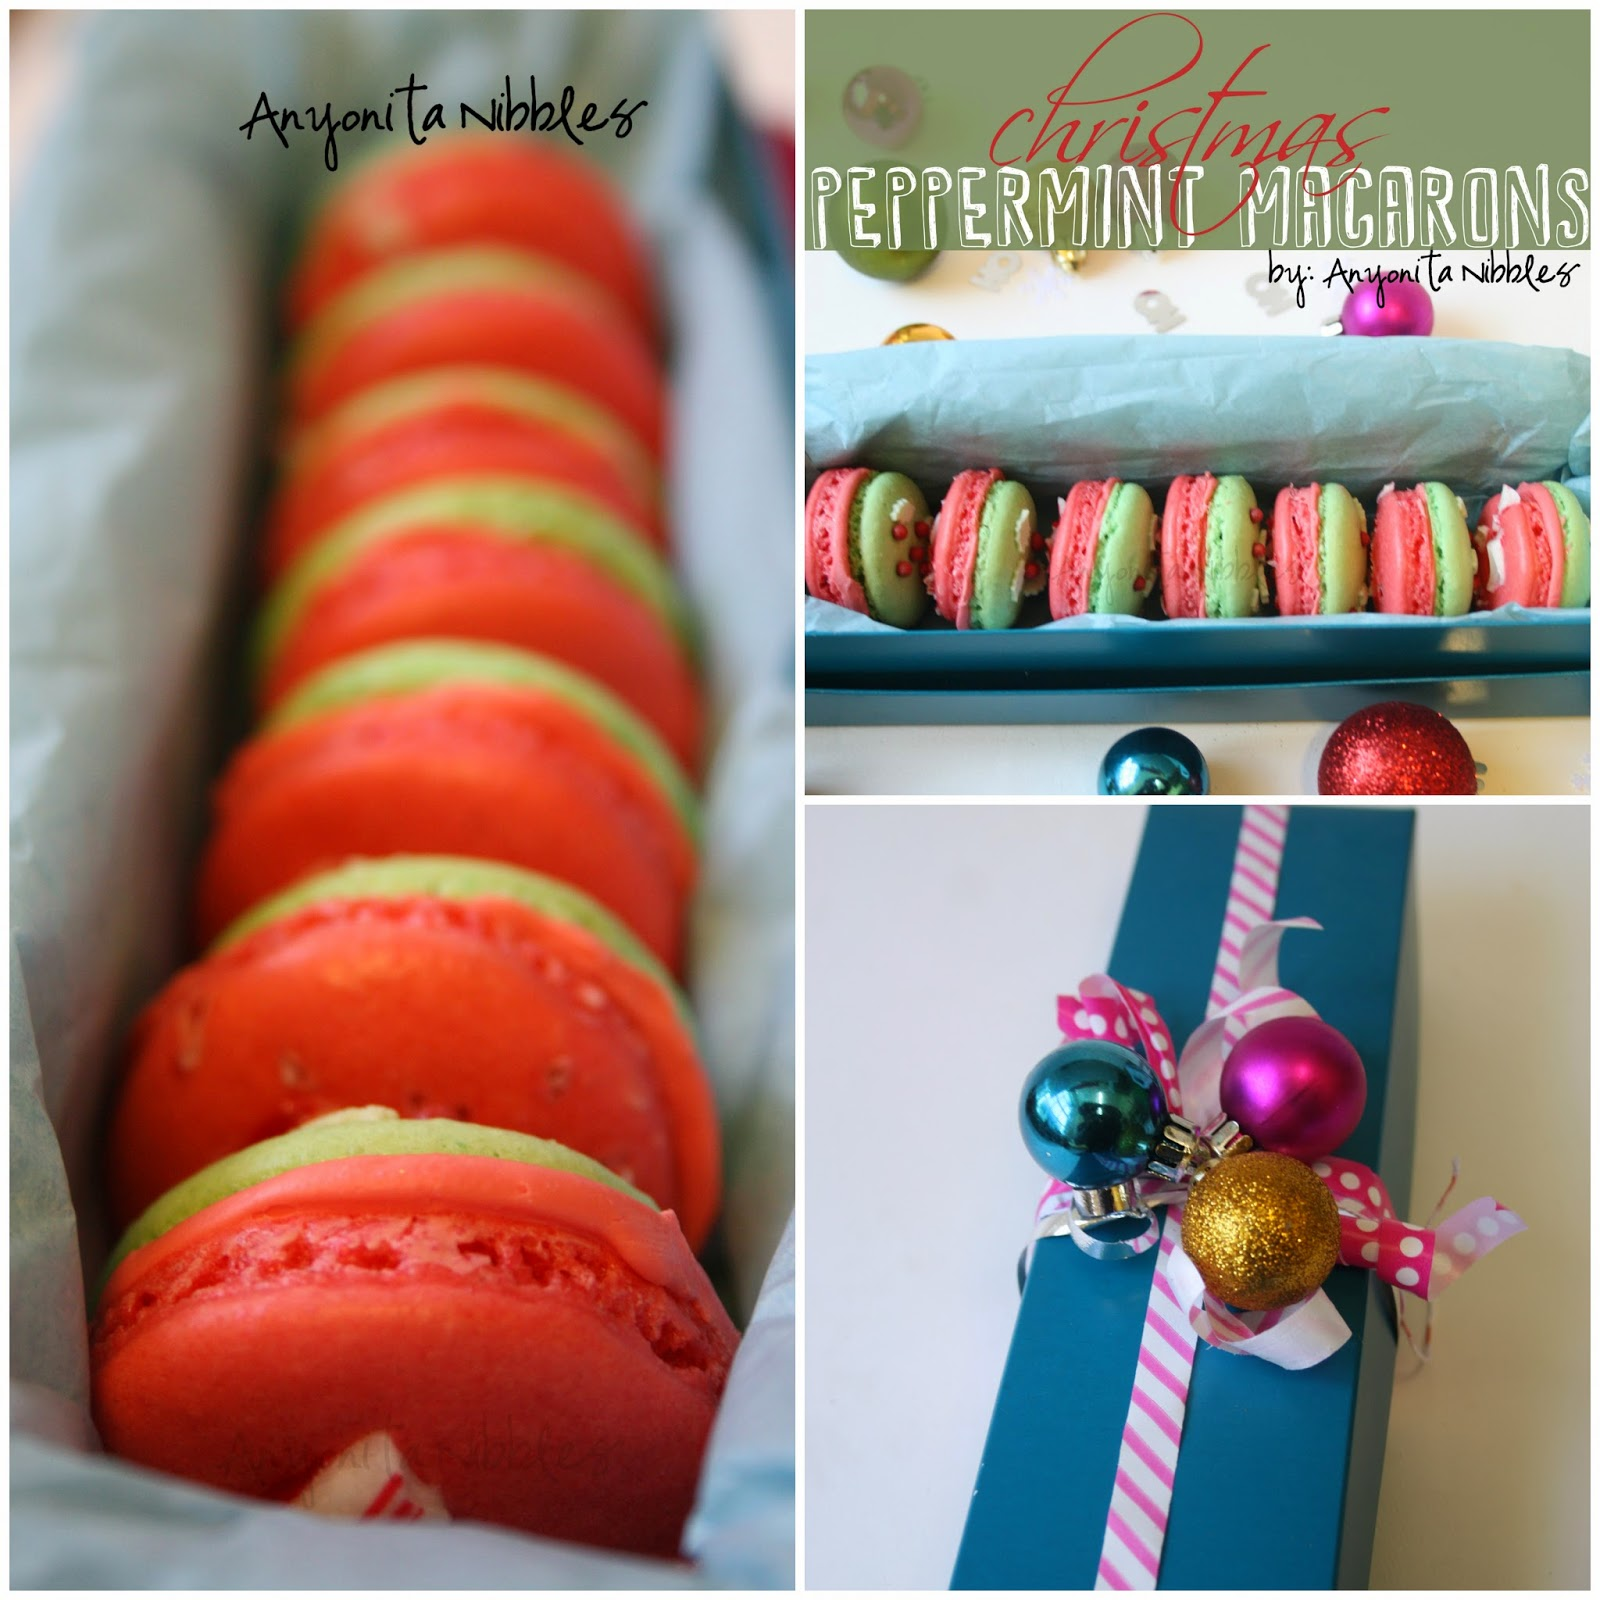 Christmas Peppermint Macarons in Gift Box from Anyonita-nibbles.co.uk